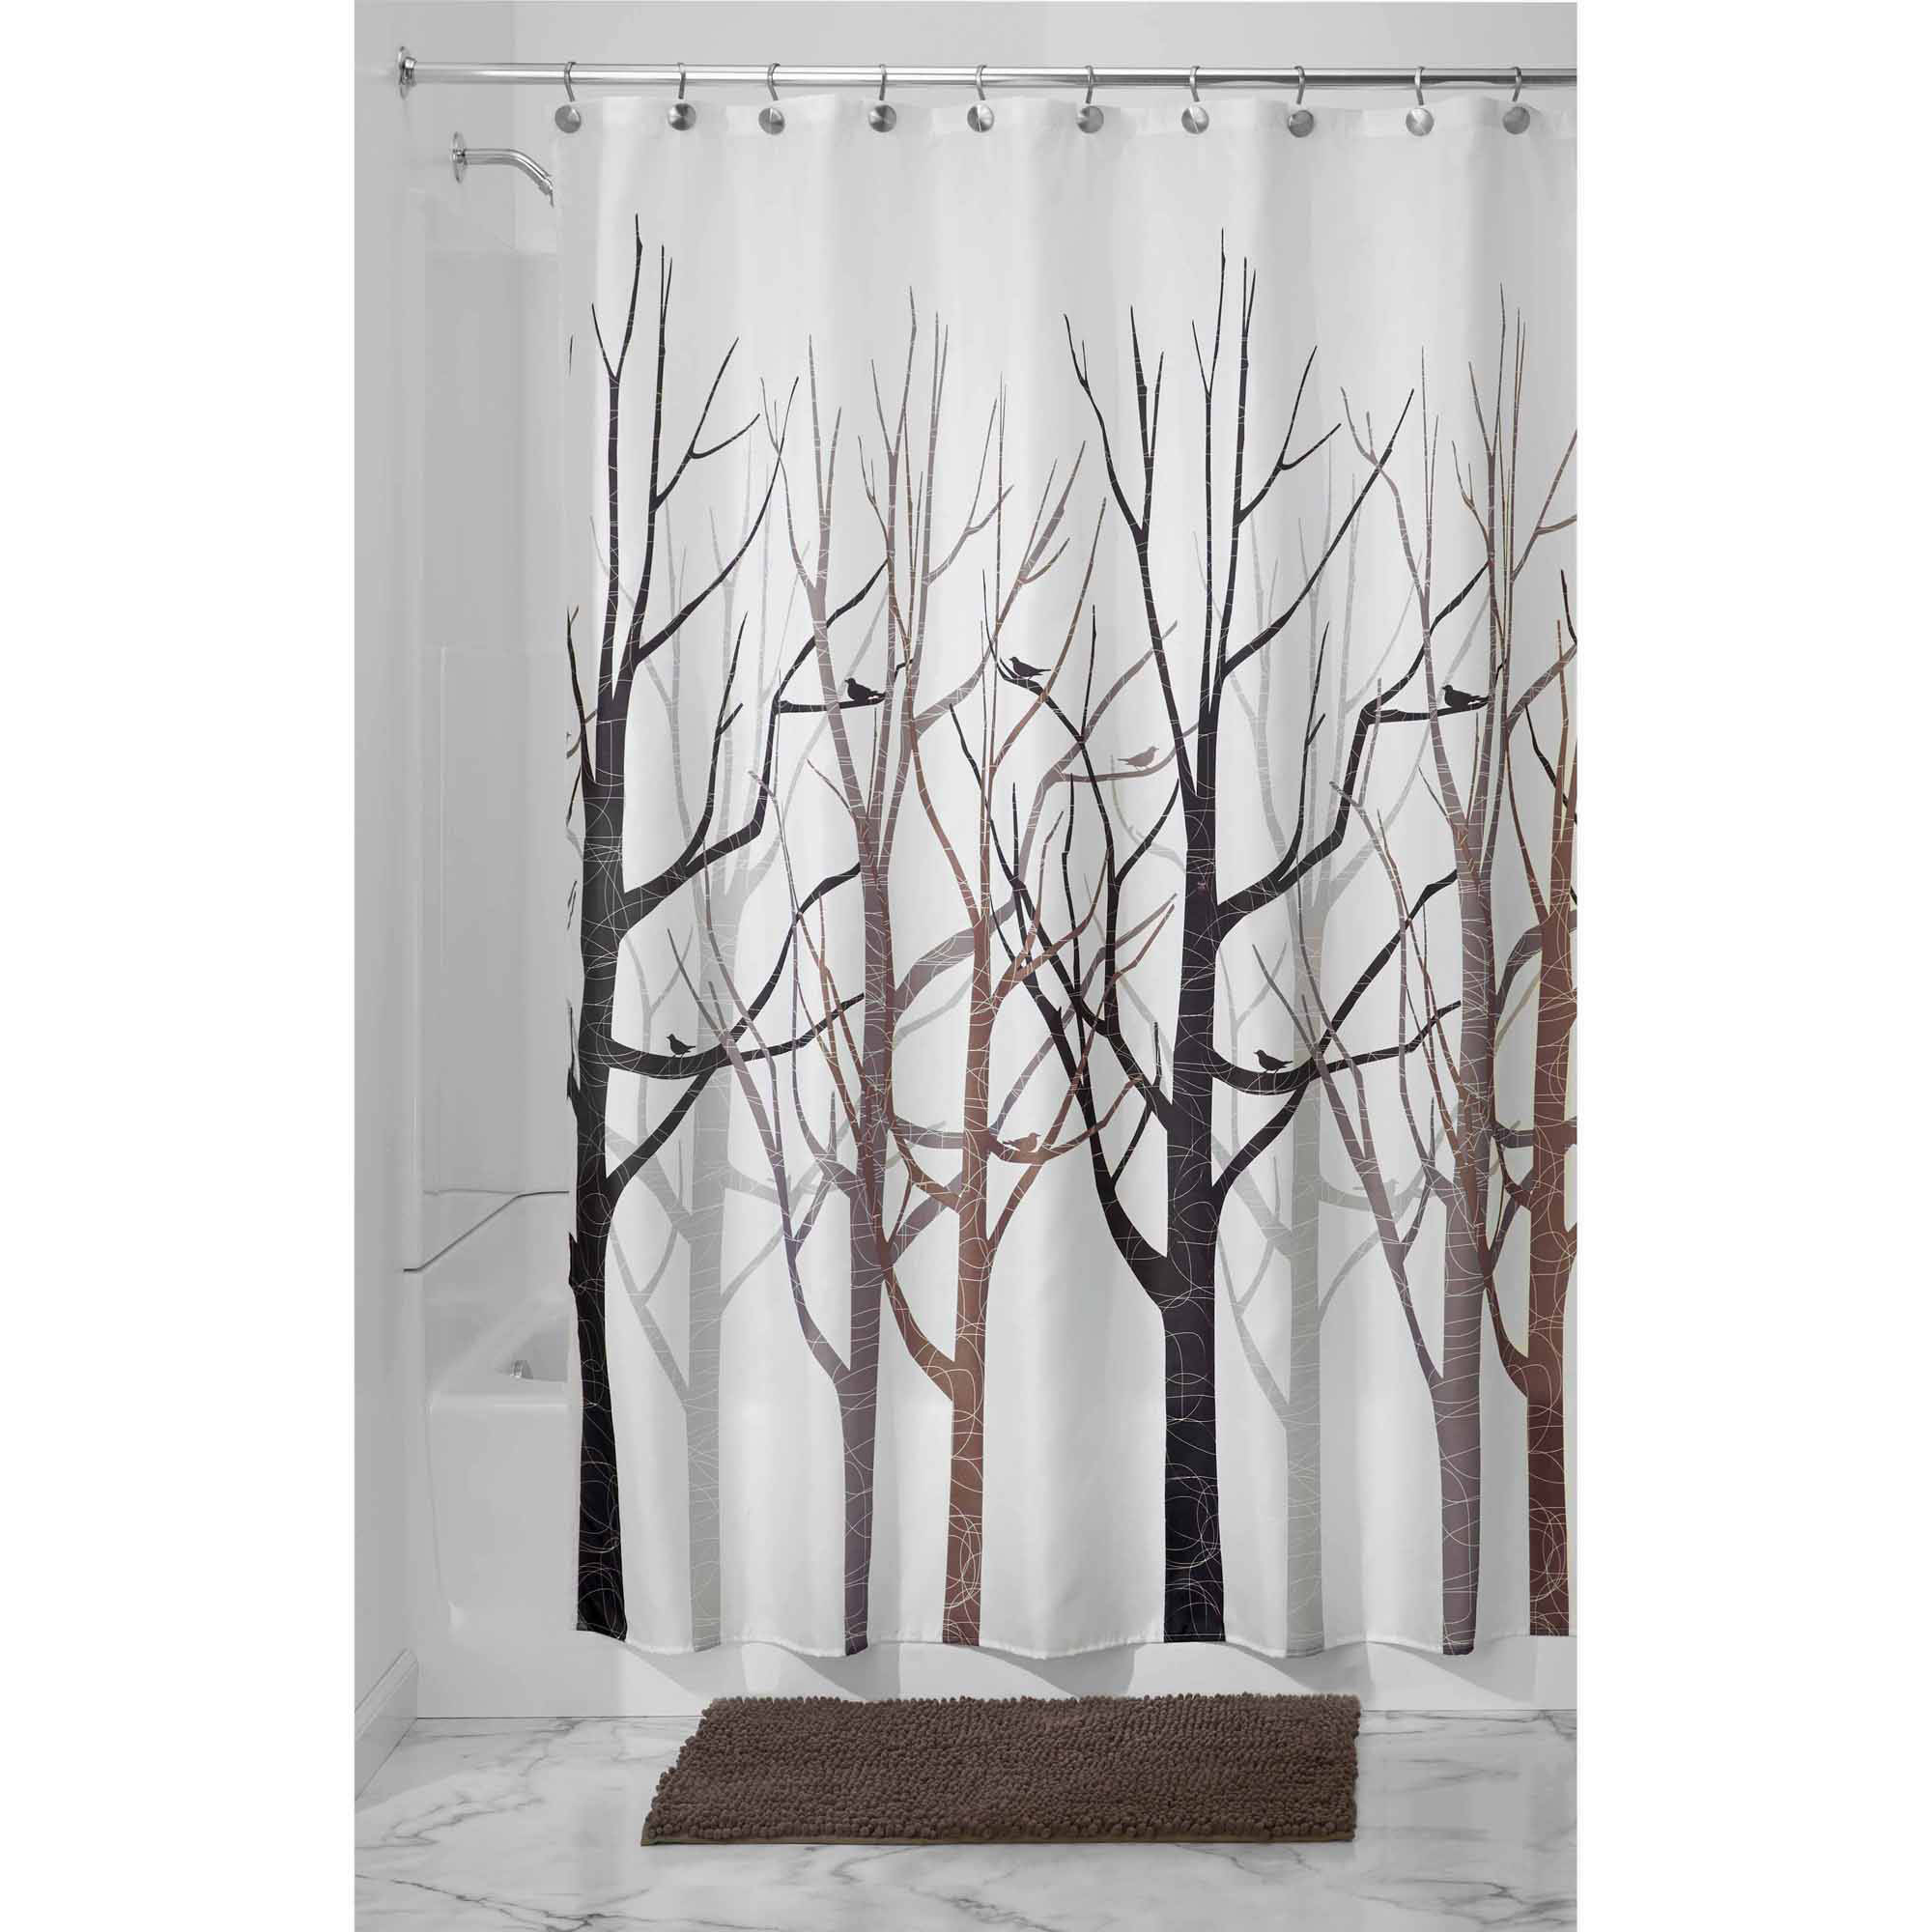 "InterDesign Forest Fabric Shower Curtain, Standard 72"" x 72"", Black/Gray"